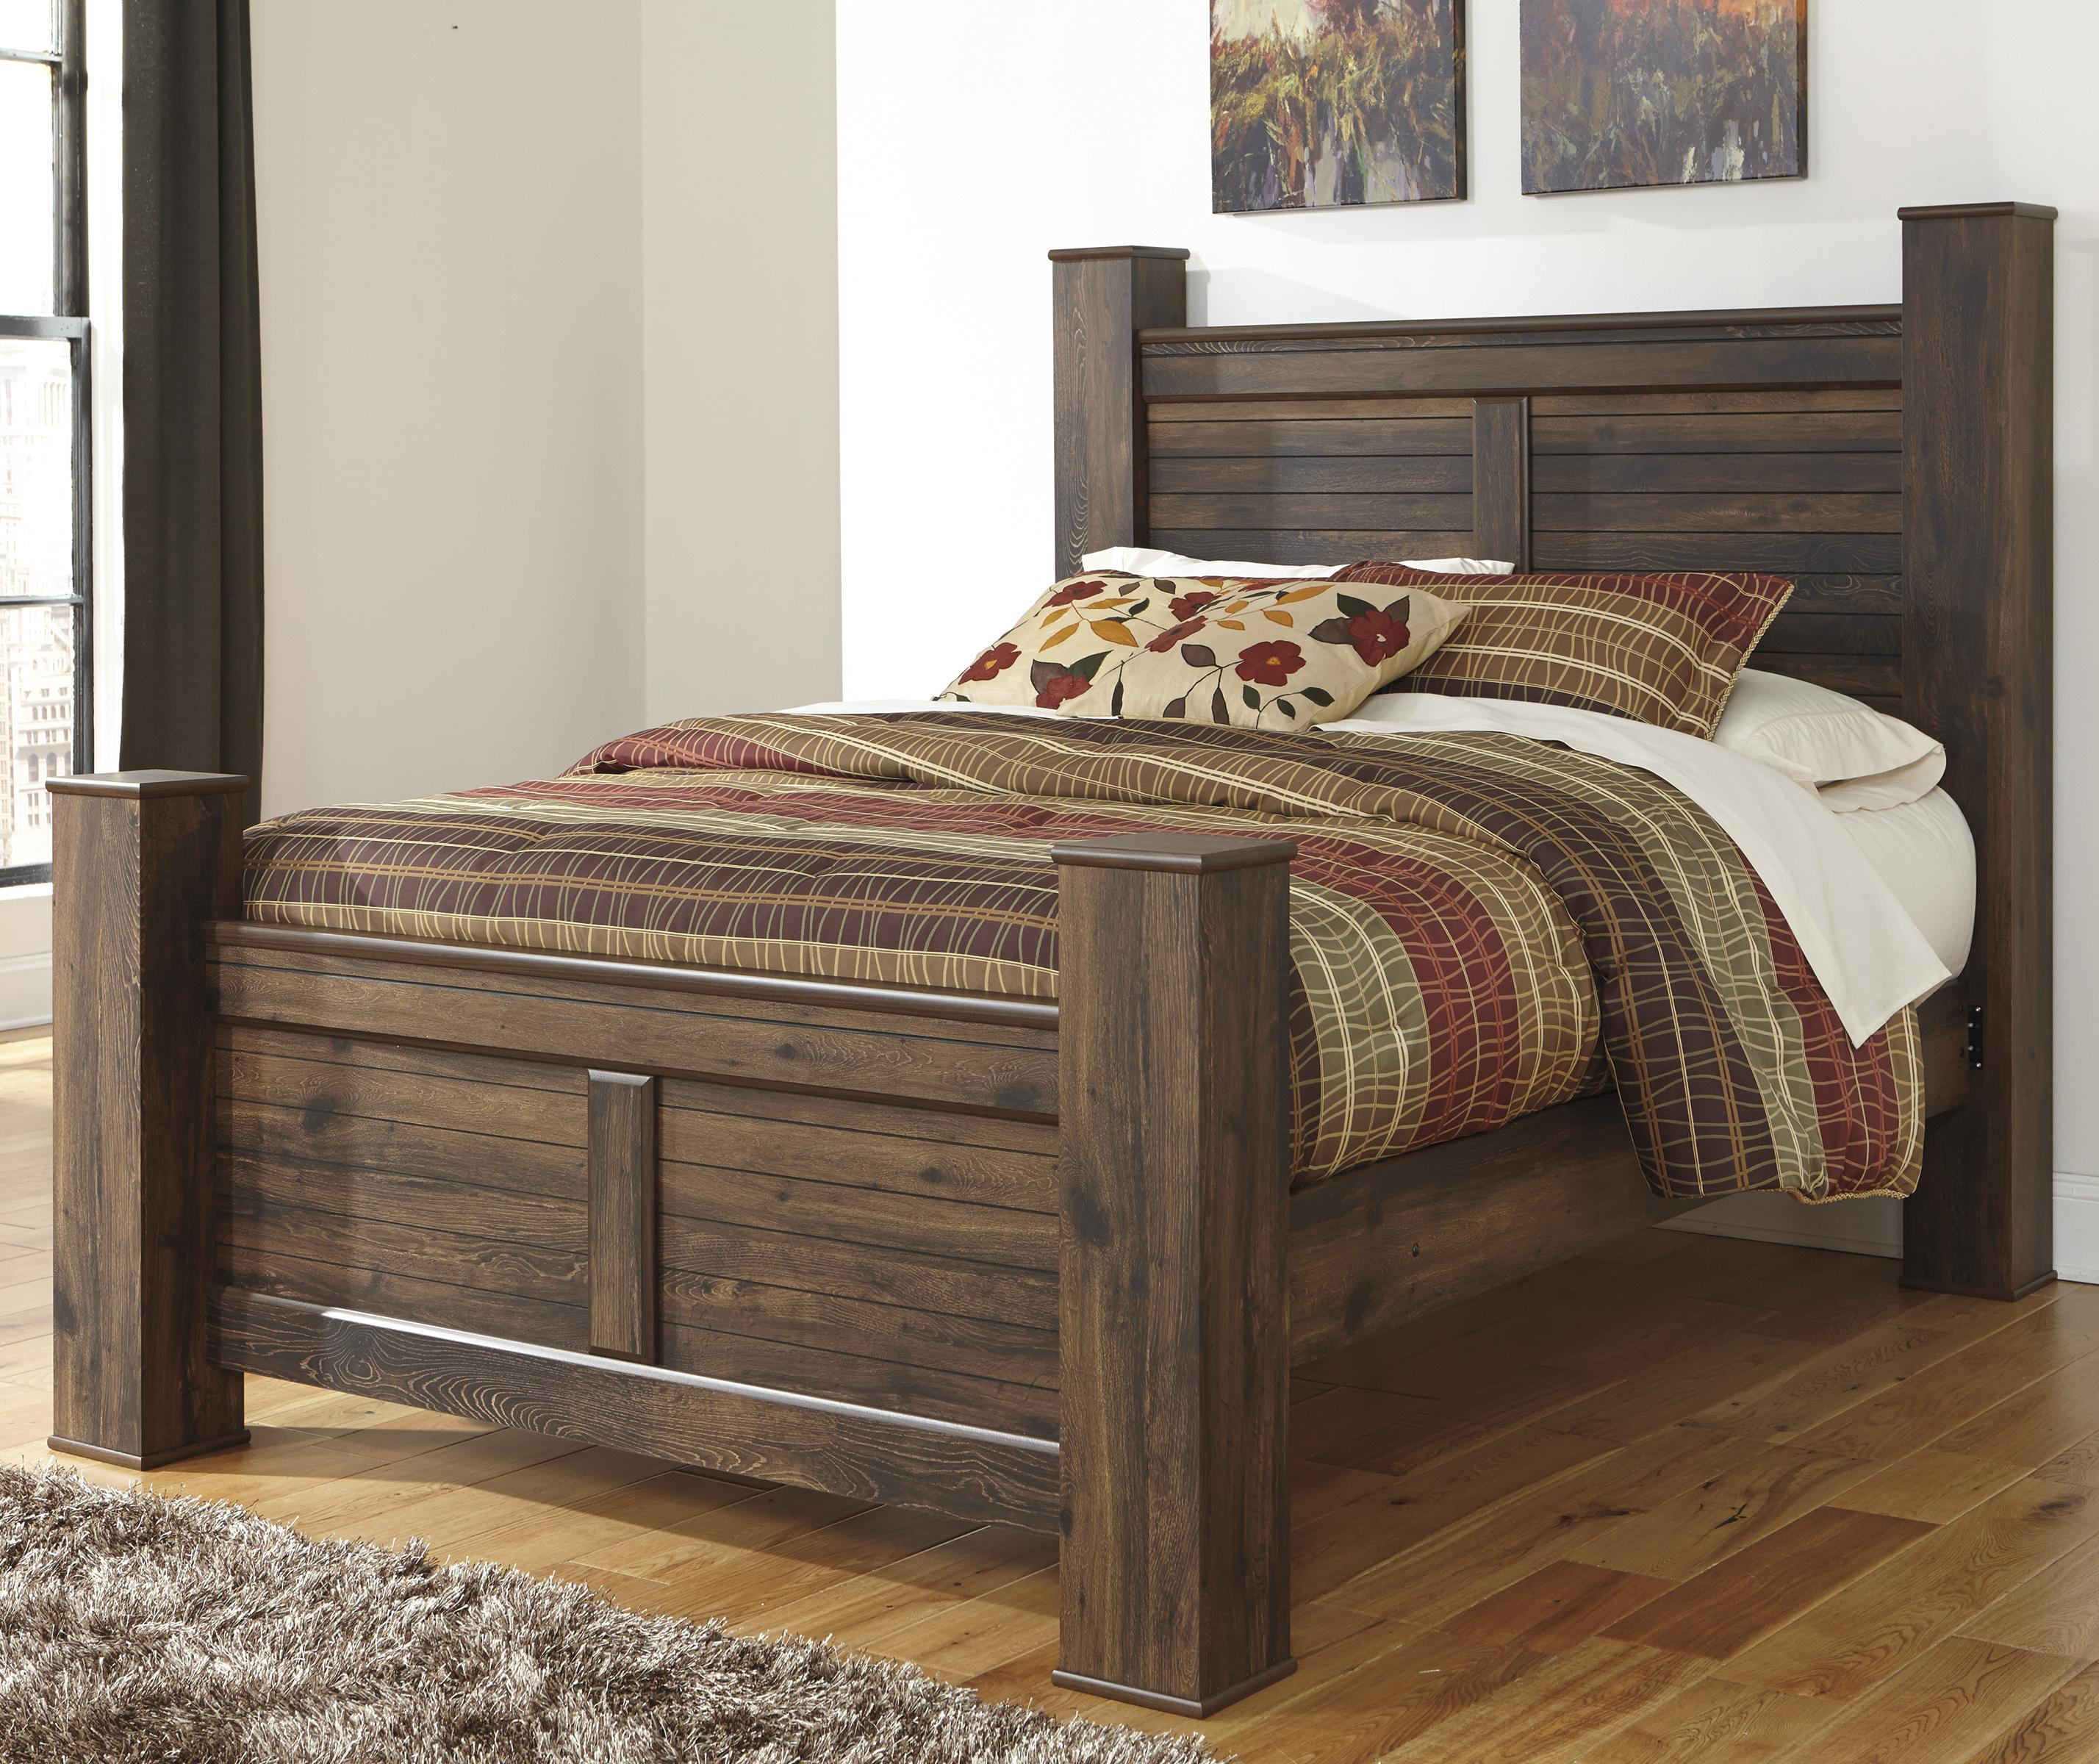 Ashley Signature Design Quinden Rustic Queen Poster Bed Dunk Amp Bright Furniture Panel Beds